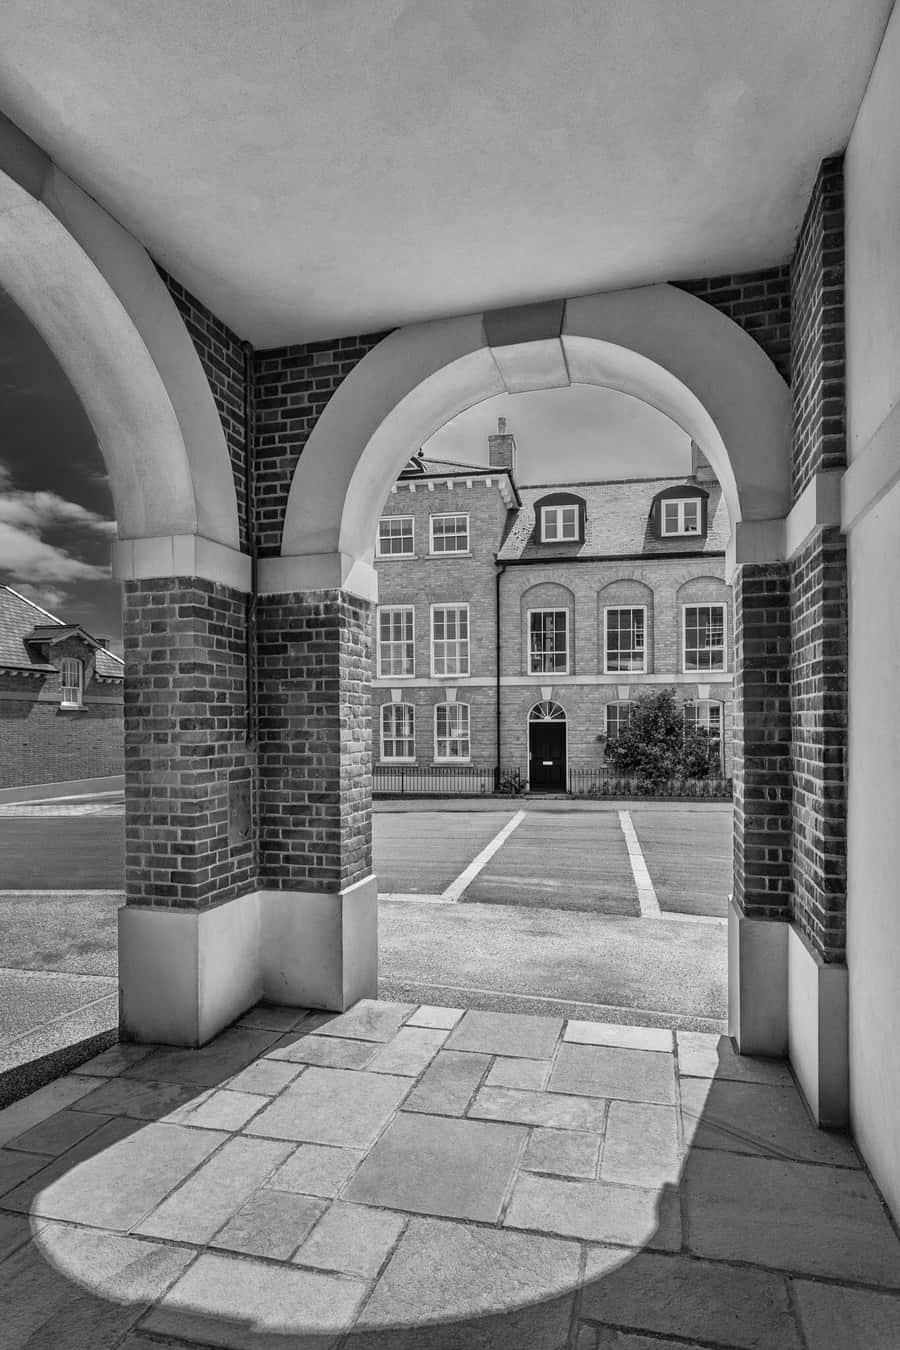 Architecture in Poundbury, Dorset.